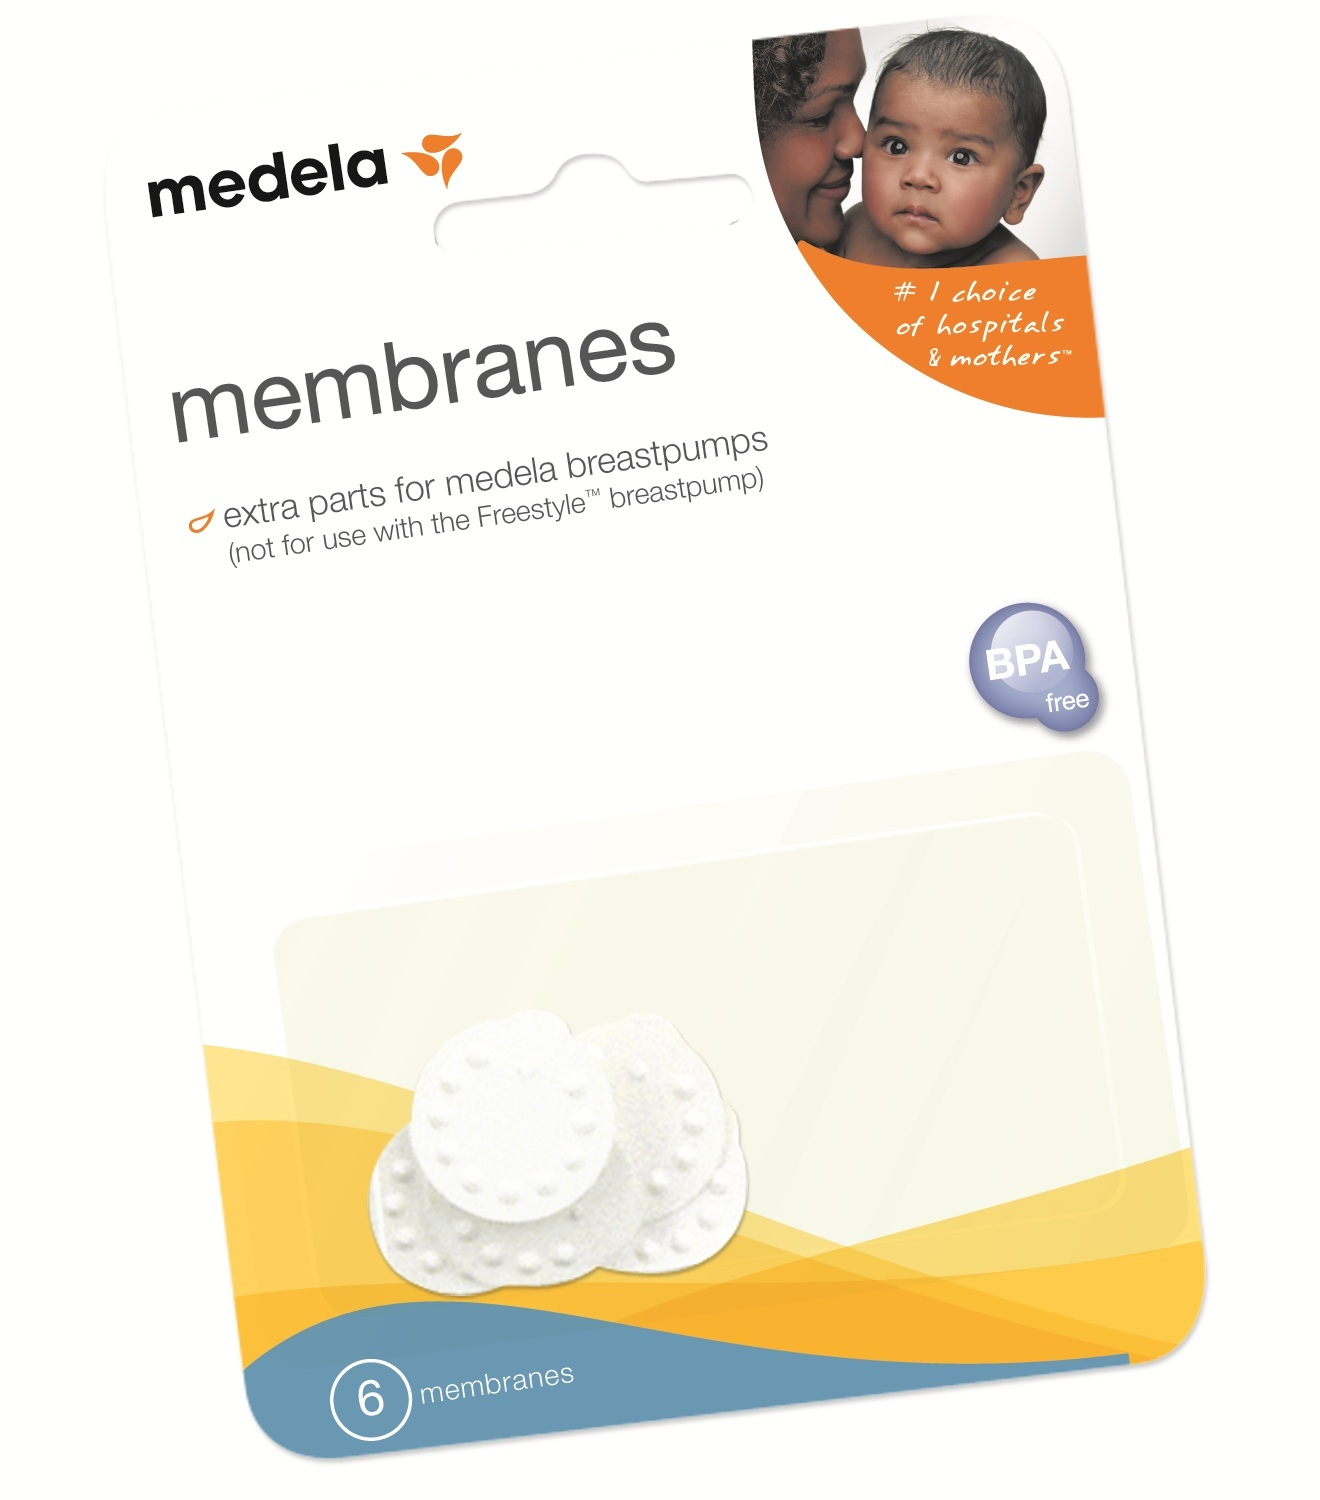 medela-white-membranes-package.jpg